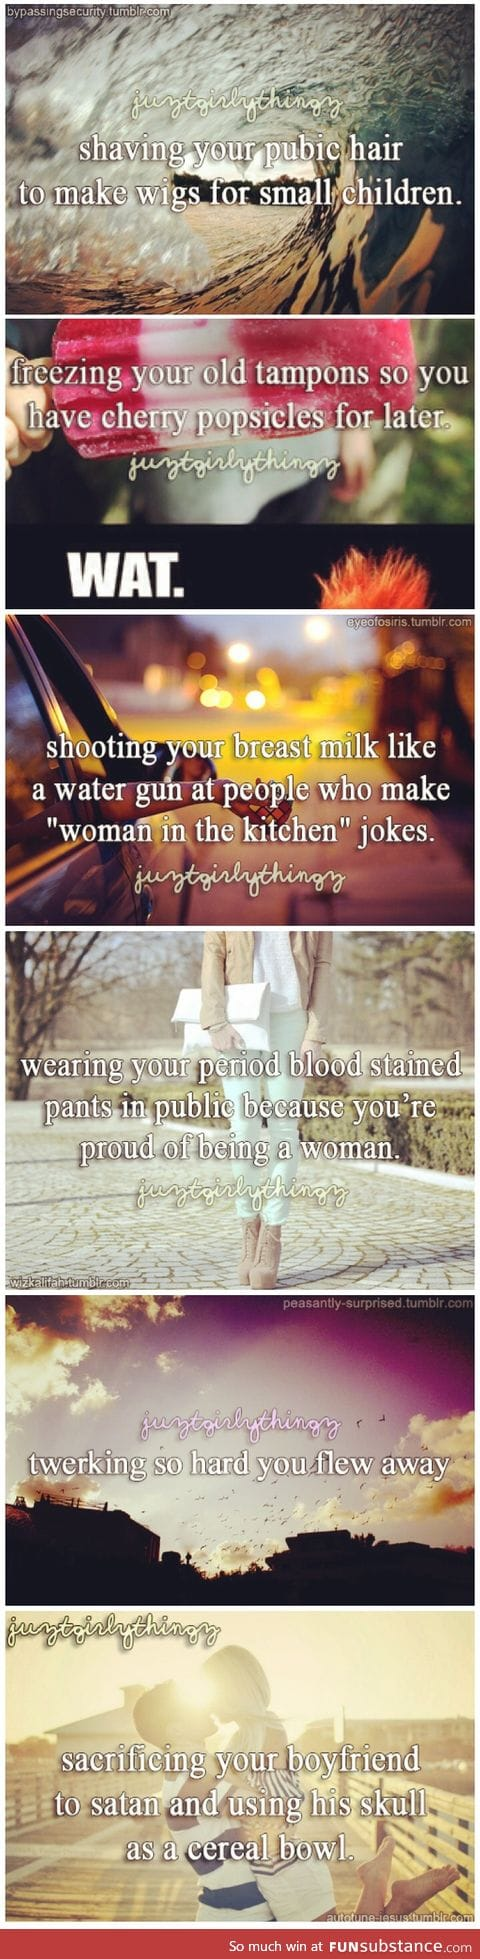 Da hell just girly things?